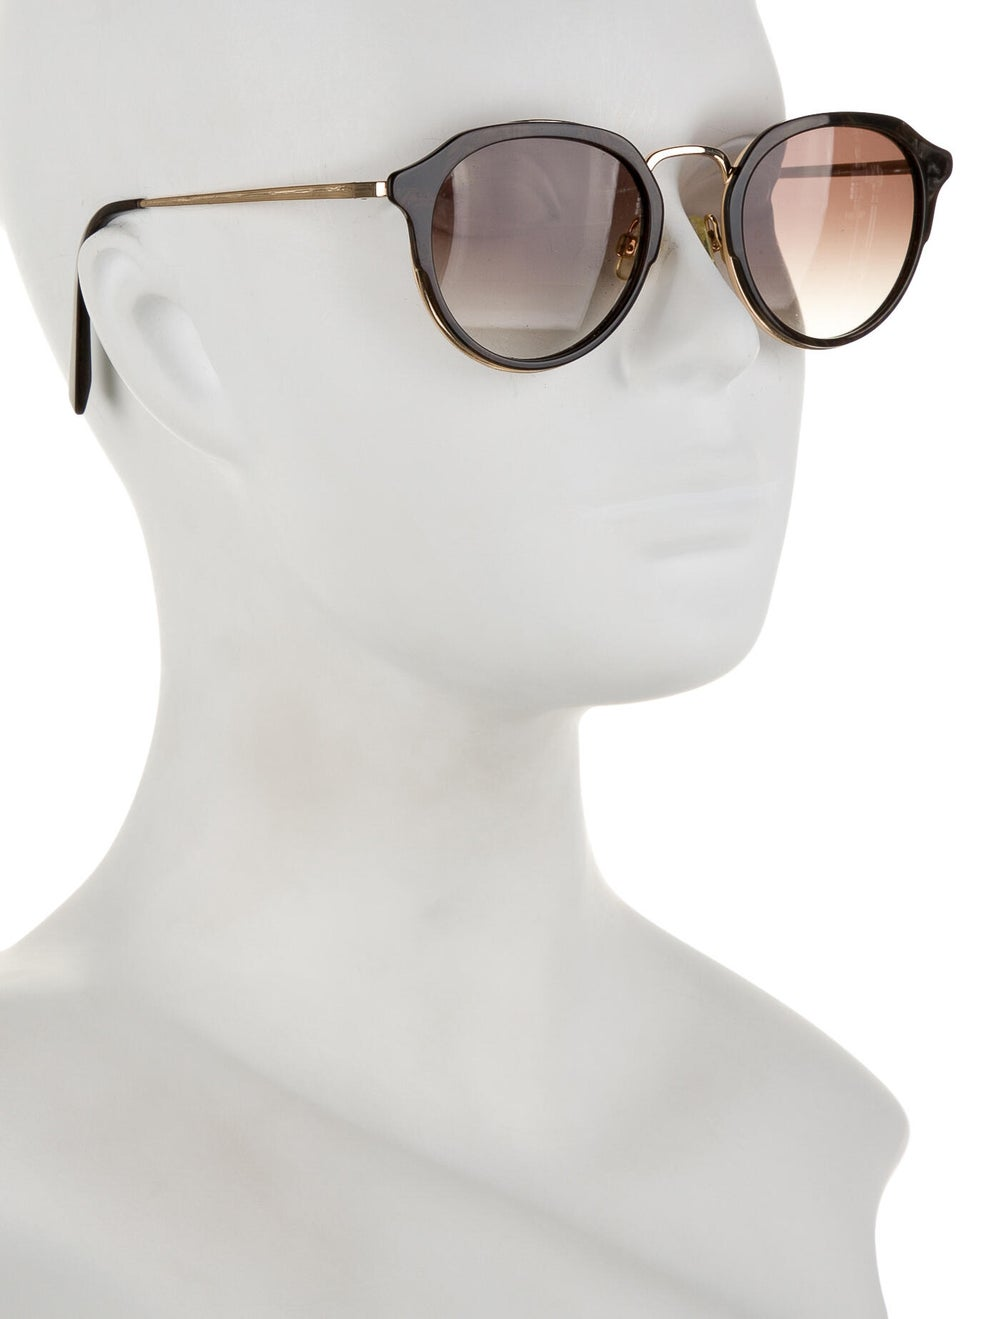 Warby Parker Tinted Round Sunglasses Gold - image 4